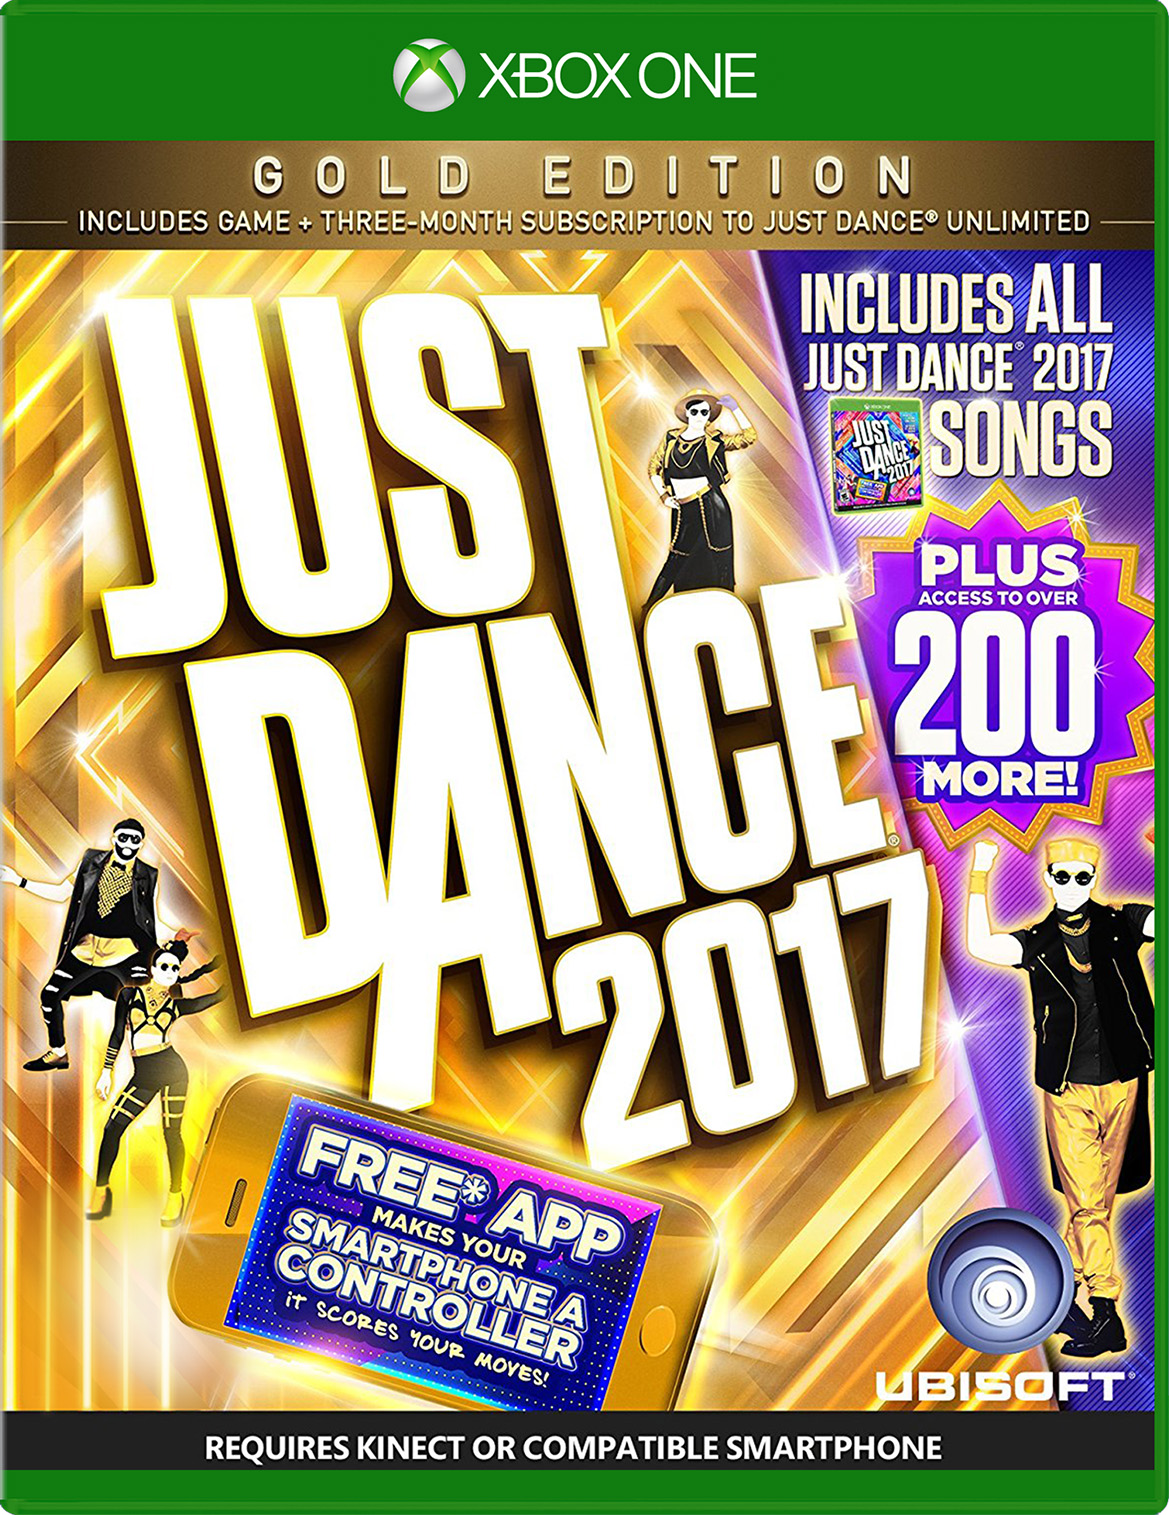 Just Dance 2017 GOLD Edition for Xbox One Deal